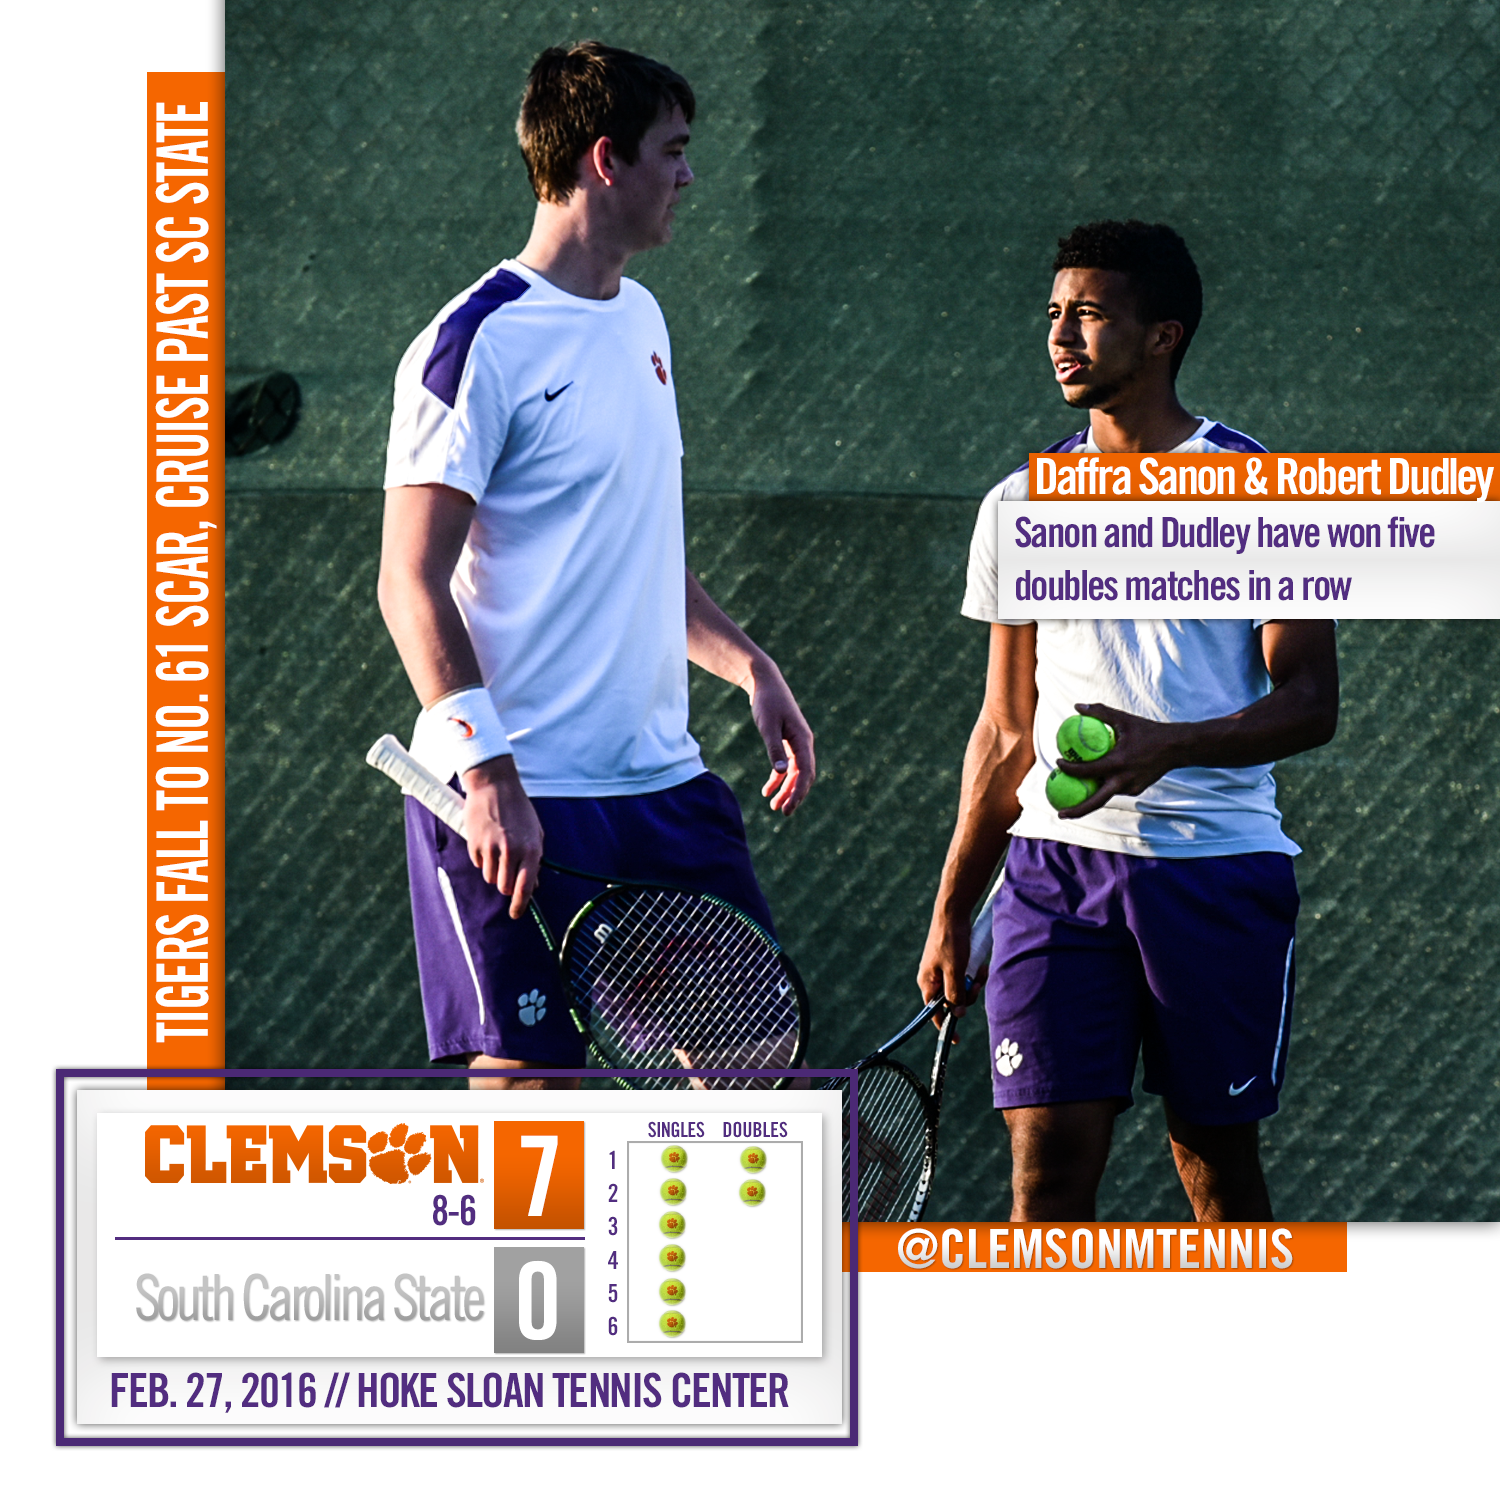 Tigers Fall to South Carolina, Cruise Past SC State